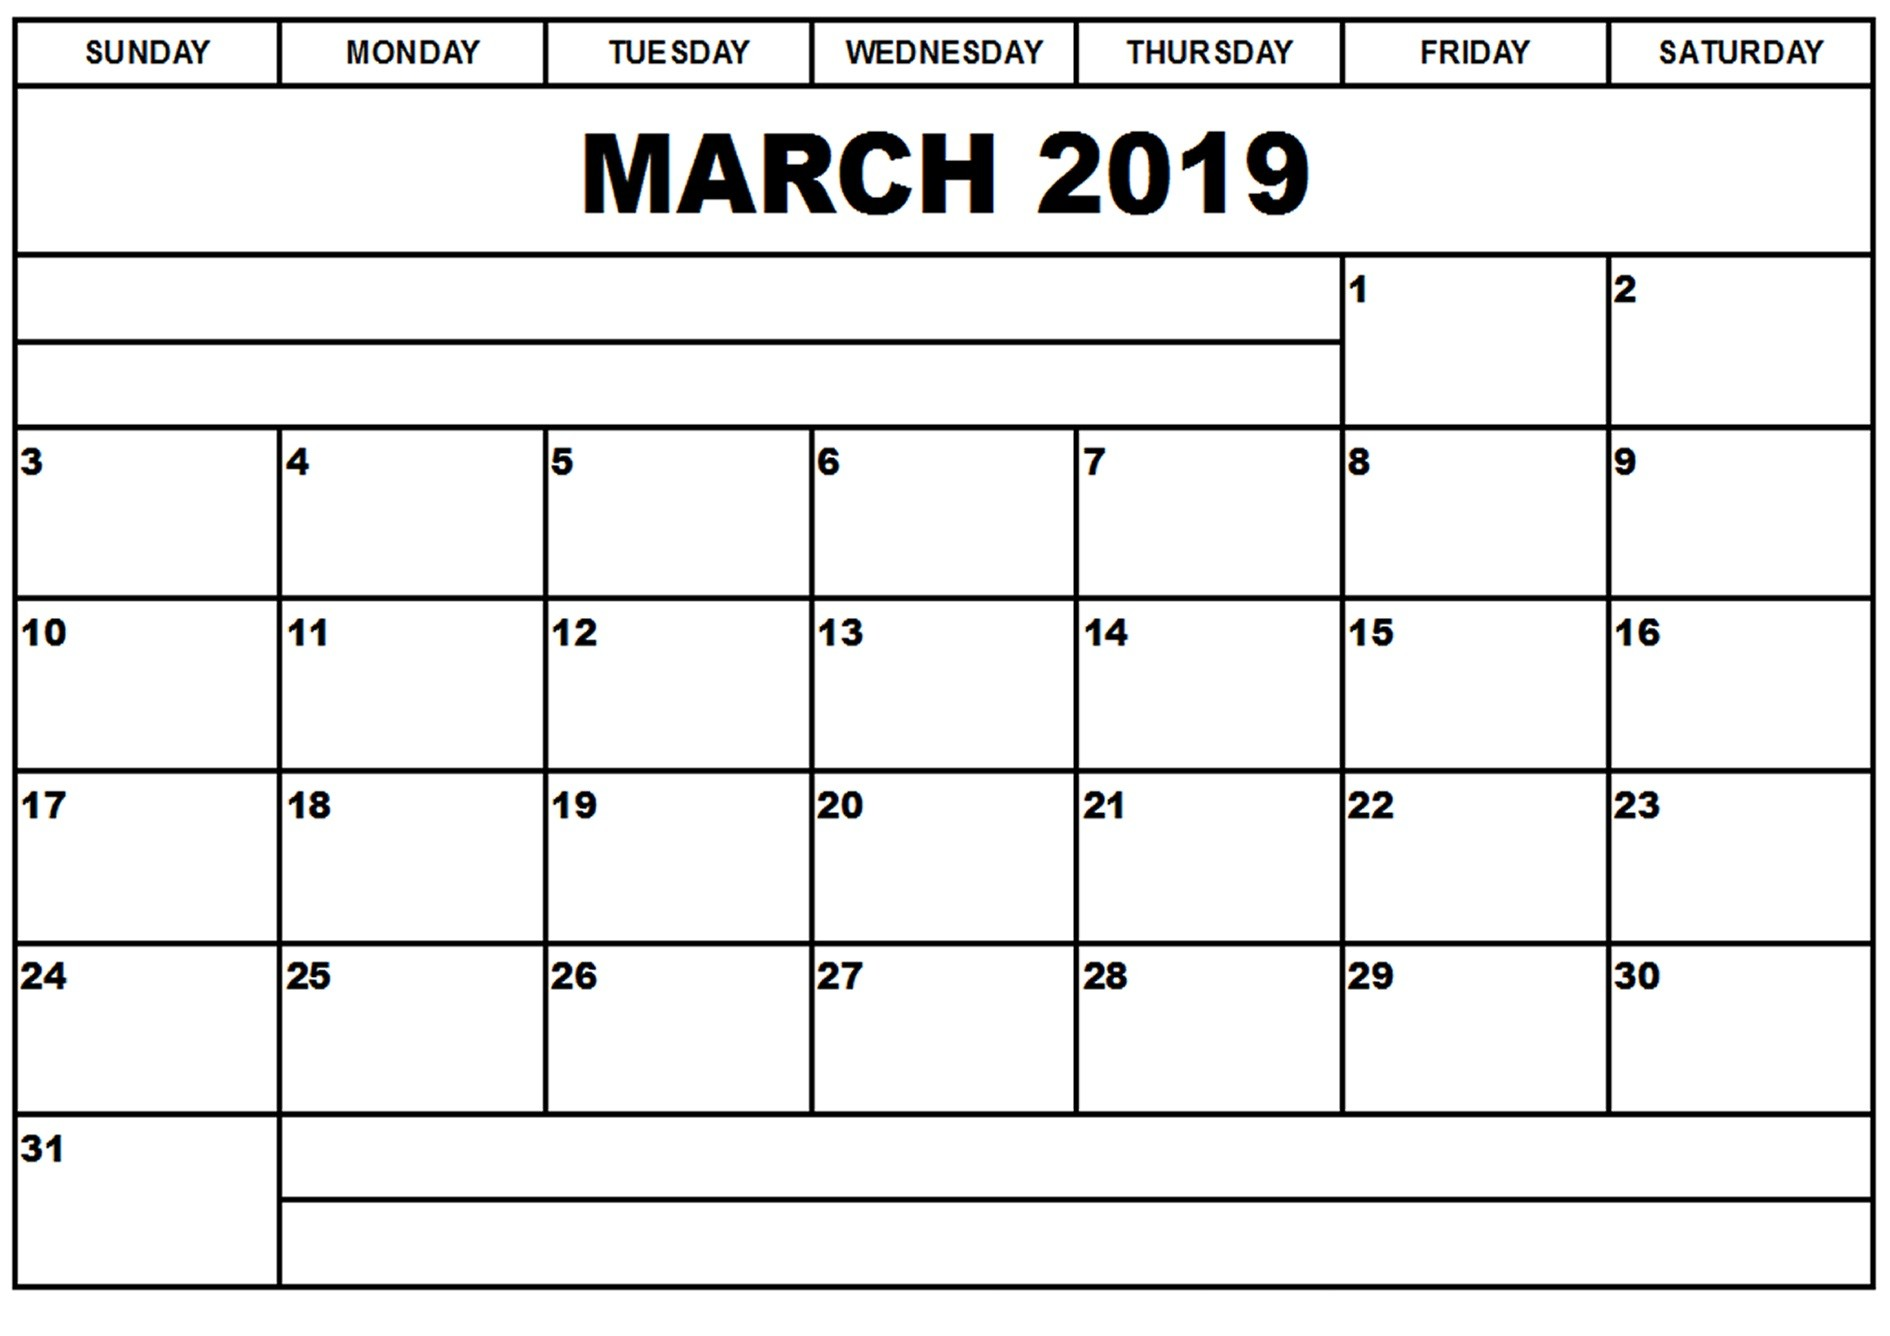 March Calendar 2019 Recientes March 2019 islamic Calendar – March 2019 Calendar Printable Of March Calendar 2019 Más Actual Odia Calendar 2019 with March Odishain